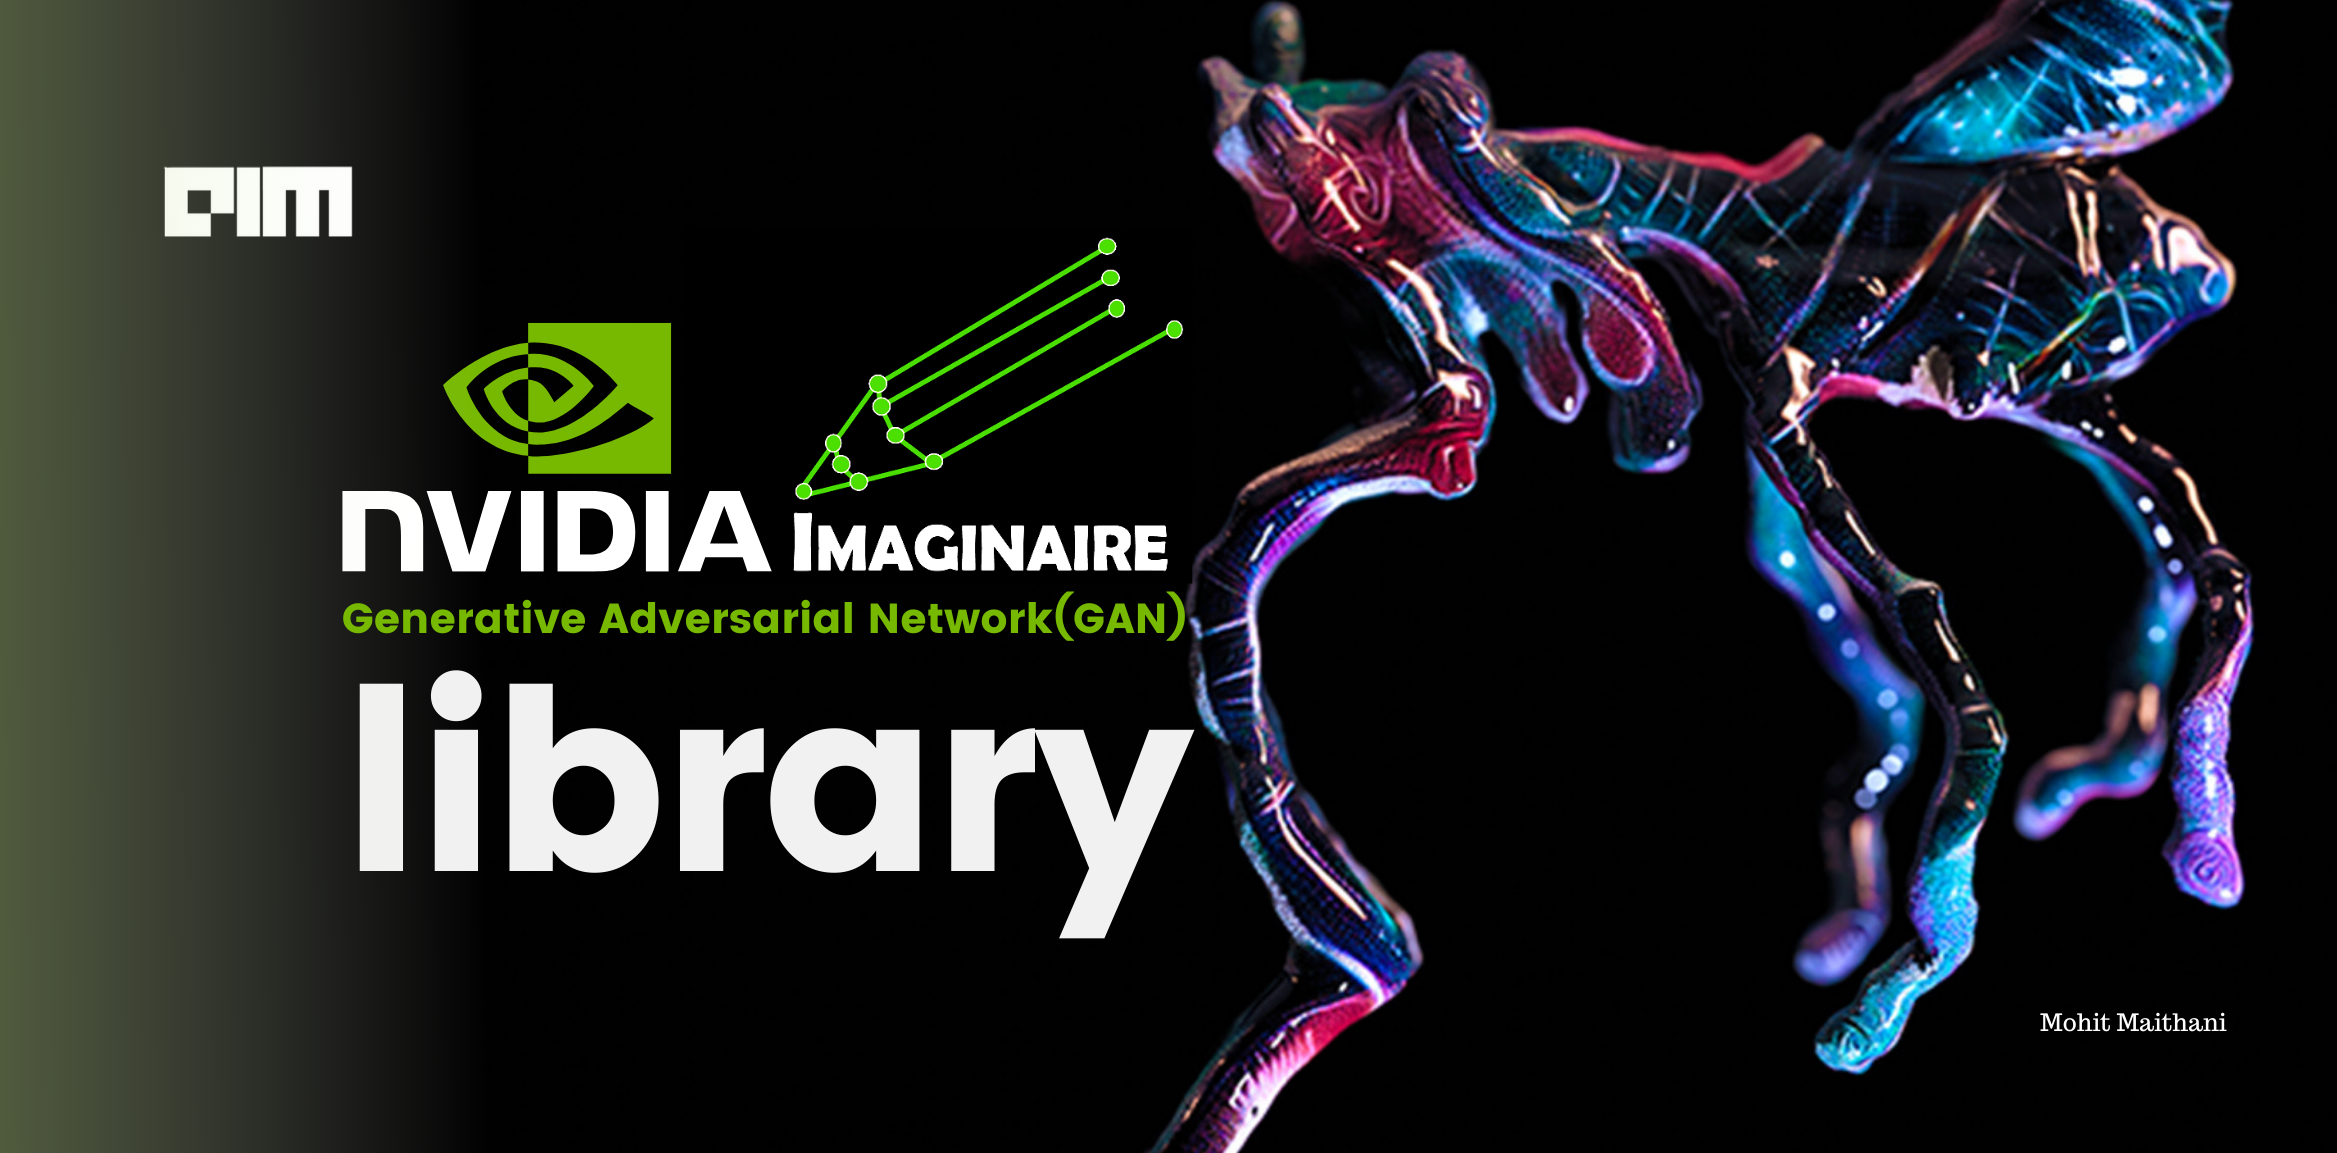 Hands-On Guide To Imaginaire: Nvidia Recently Launched GAN Library